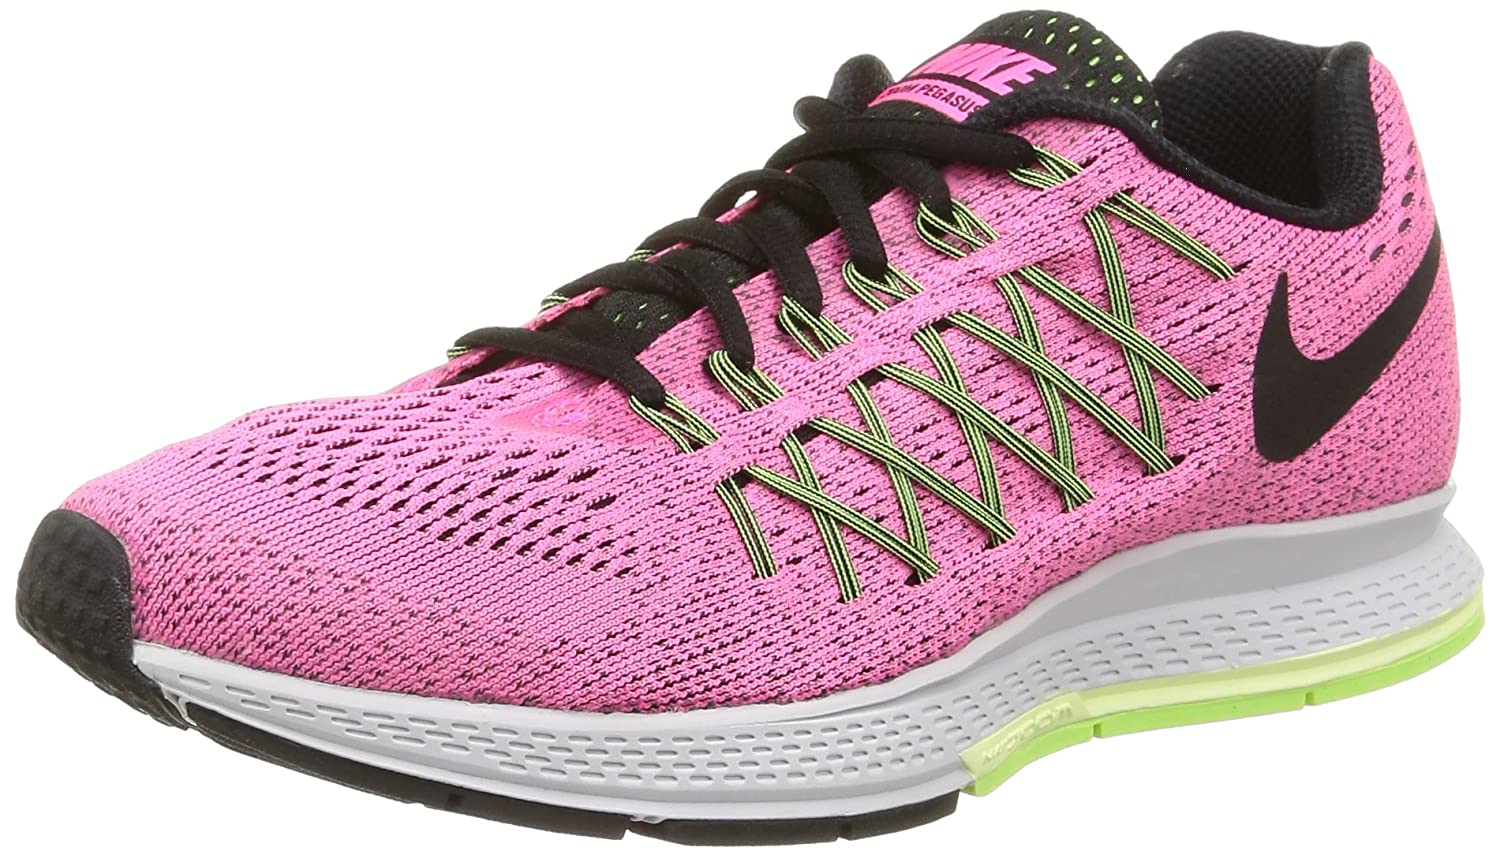 nouveau produit 2ab9e 9f51d Amazon.com | Nike Air Zoom Pegasus 32 Women's Running Shoes ...